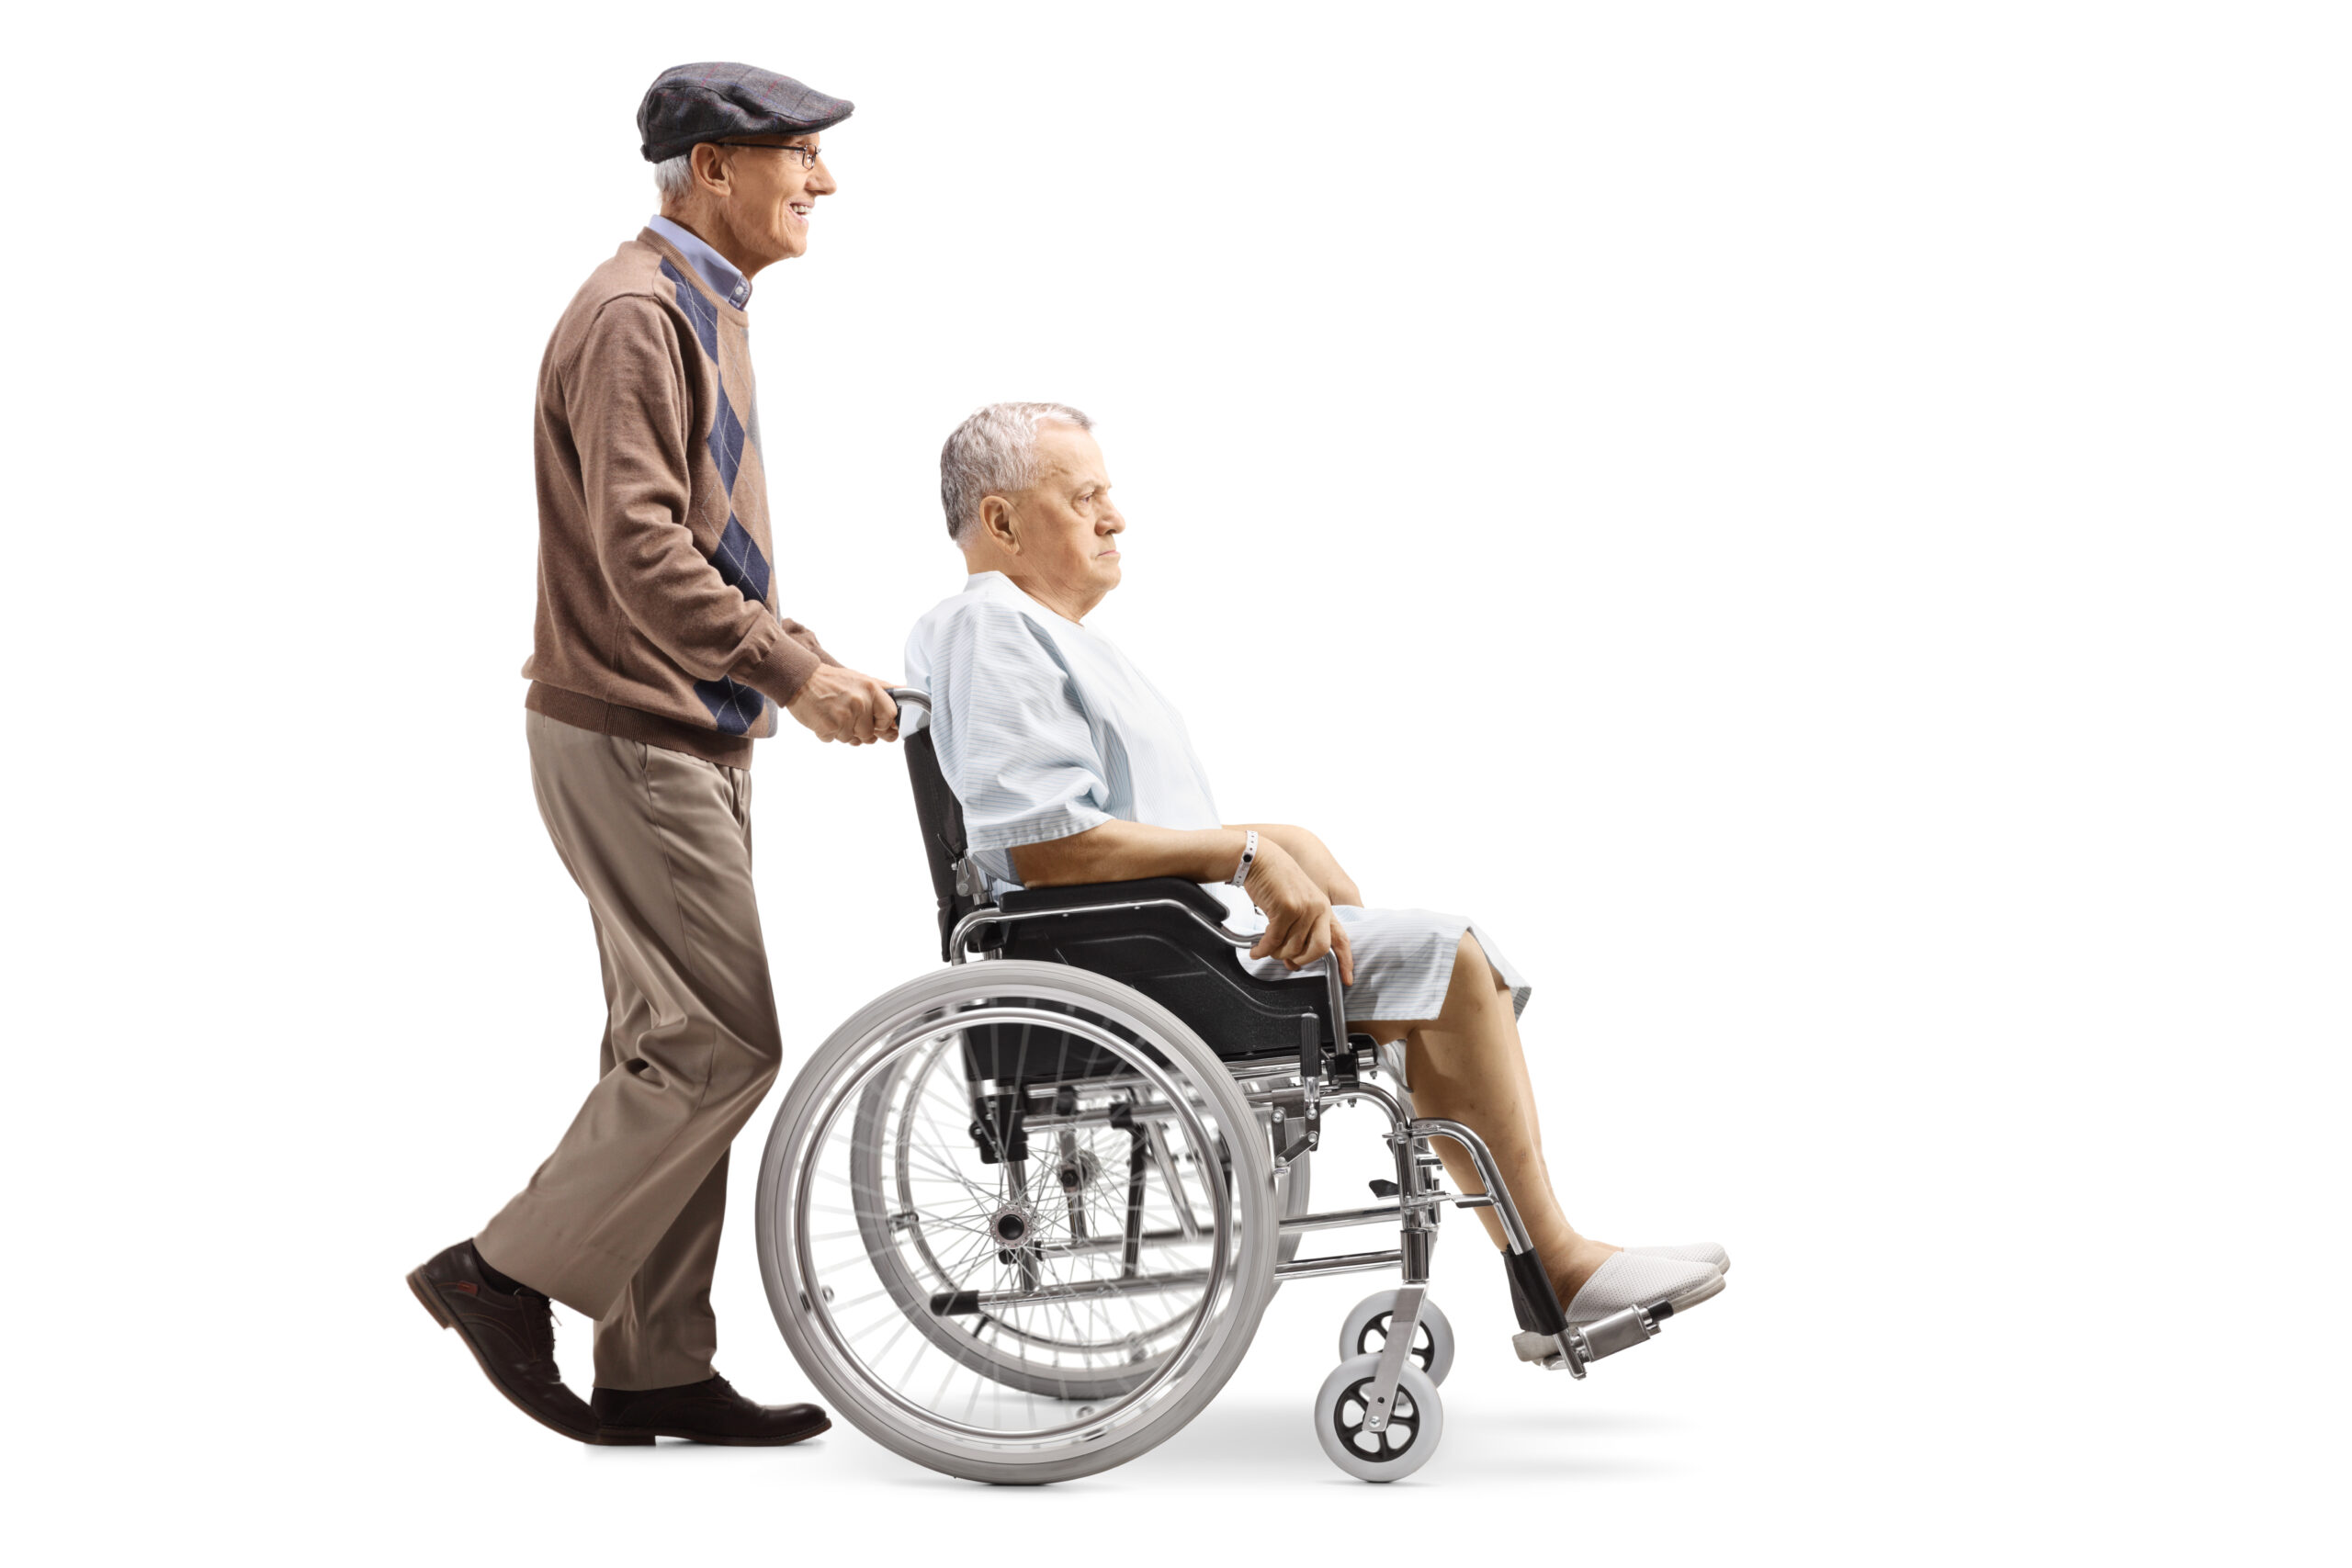 Full length profile shot of an elderly man pushing a senior male patient in a wheelchair isolated on white background